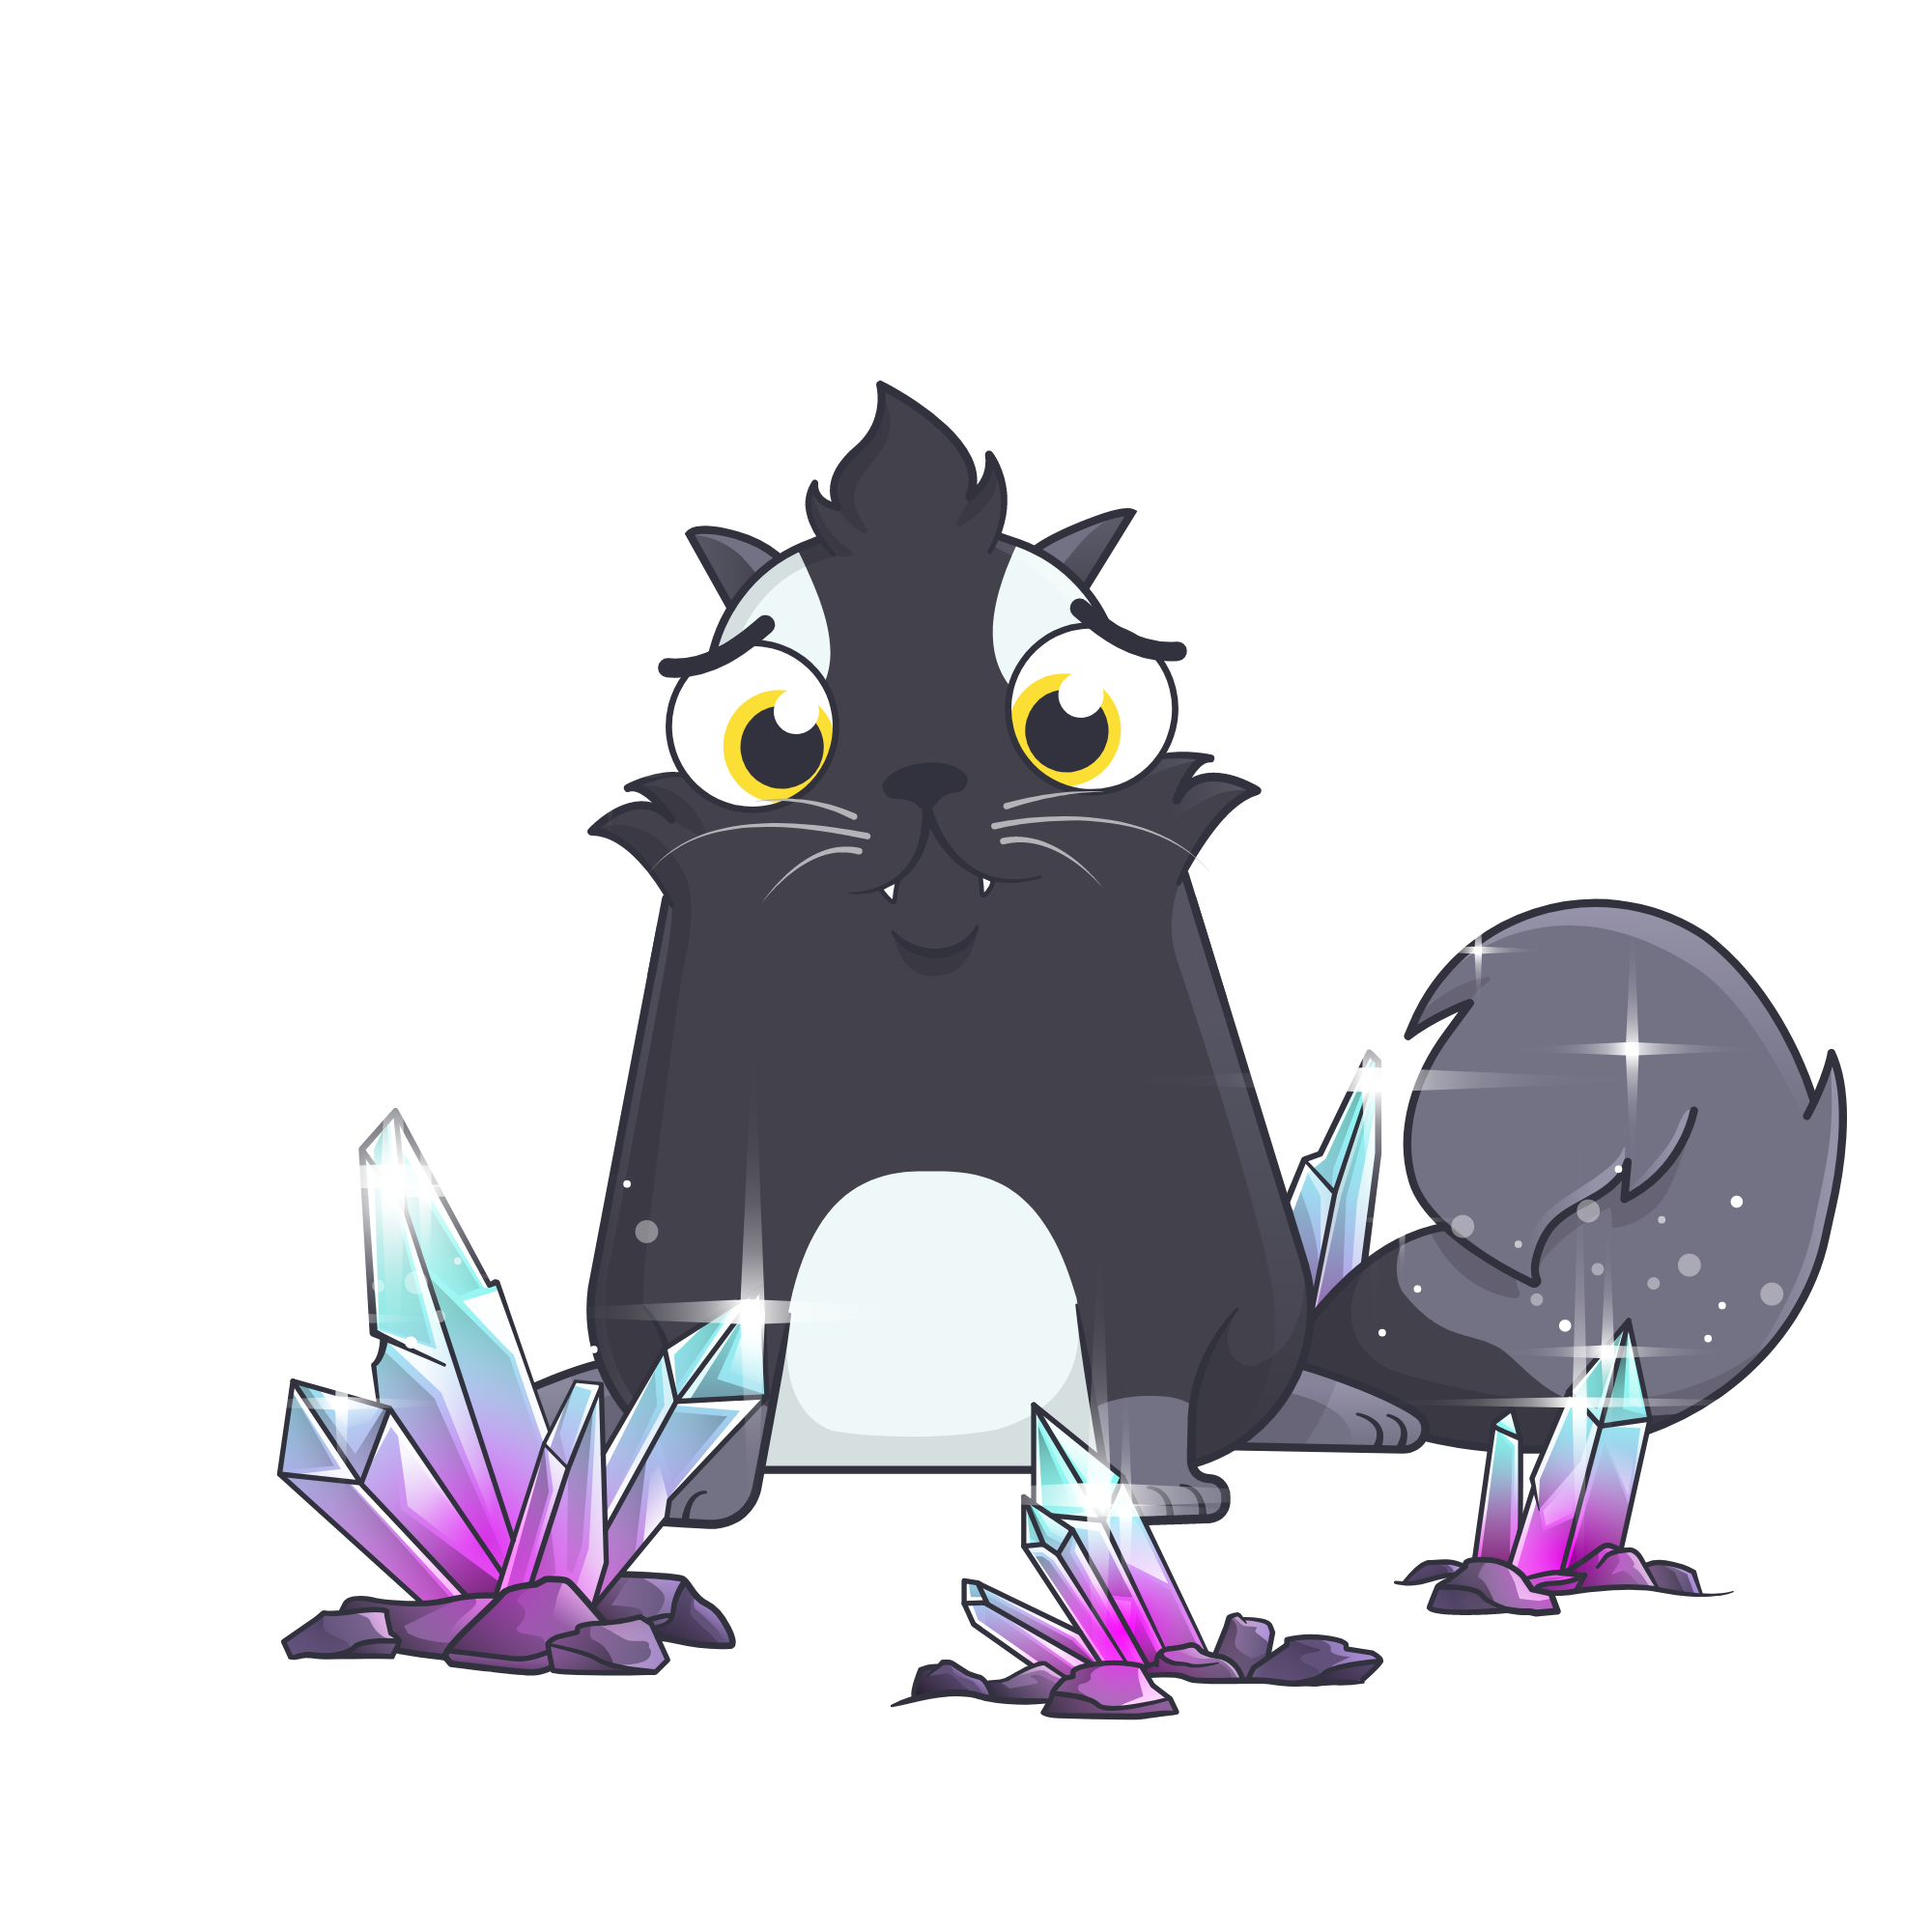 cryptokitty #1951847